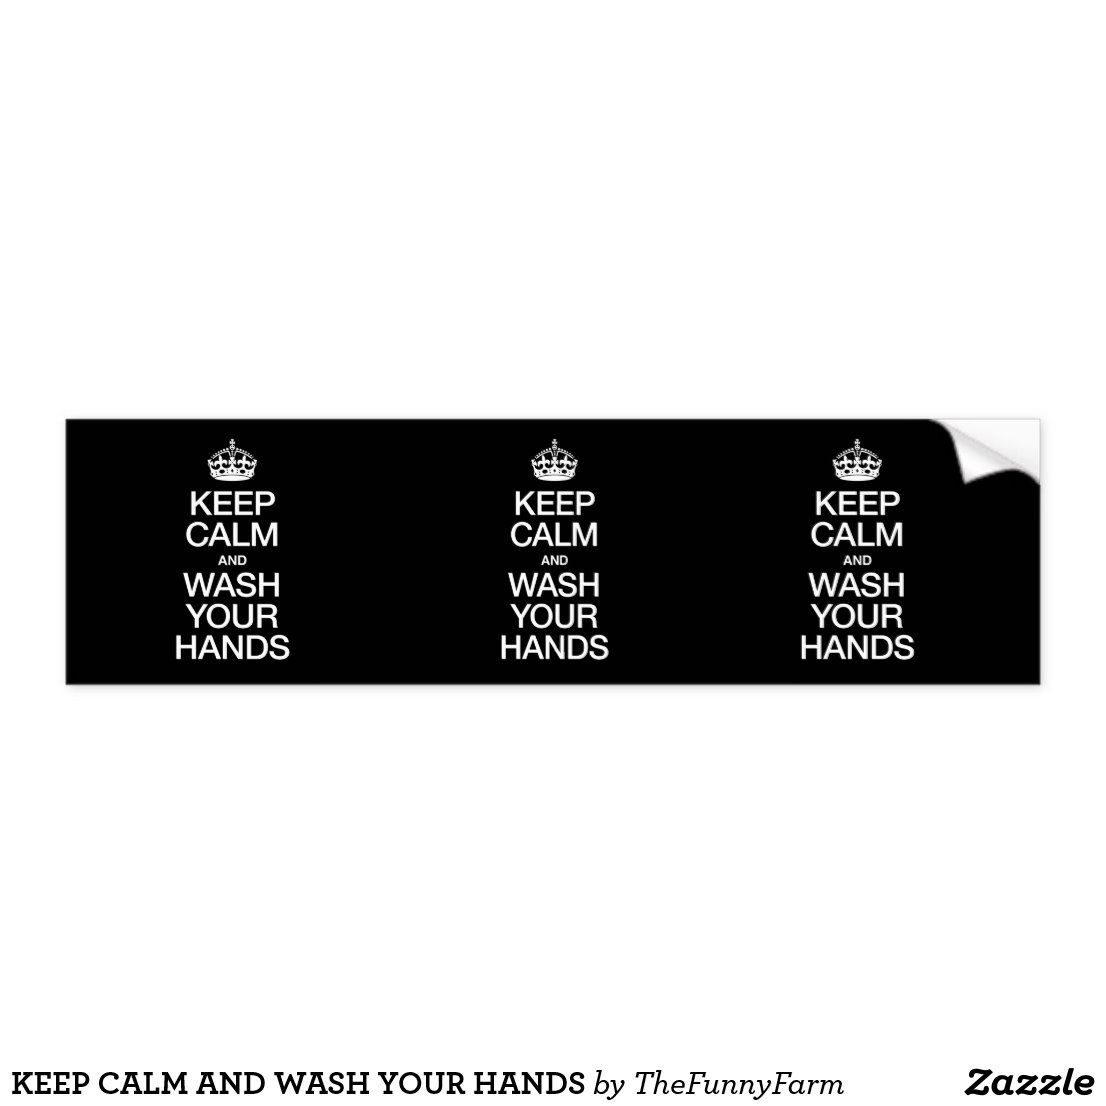 Keep Calm And Wash Your Hands Bumper Sticker Zazzle Com Bumper Stickers Wash Your Hands Strong Adhesive [ 1106 x 1106 Pixel ]